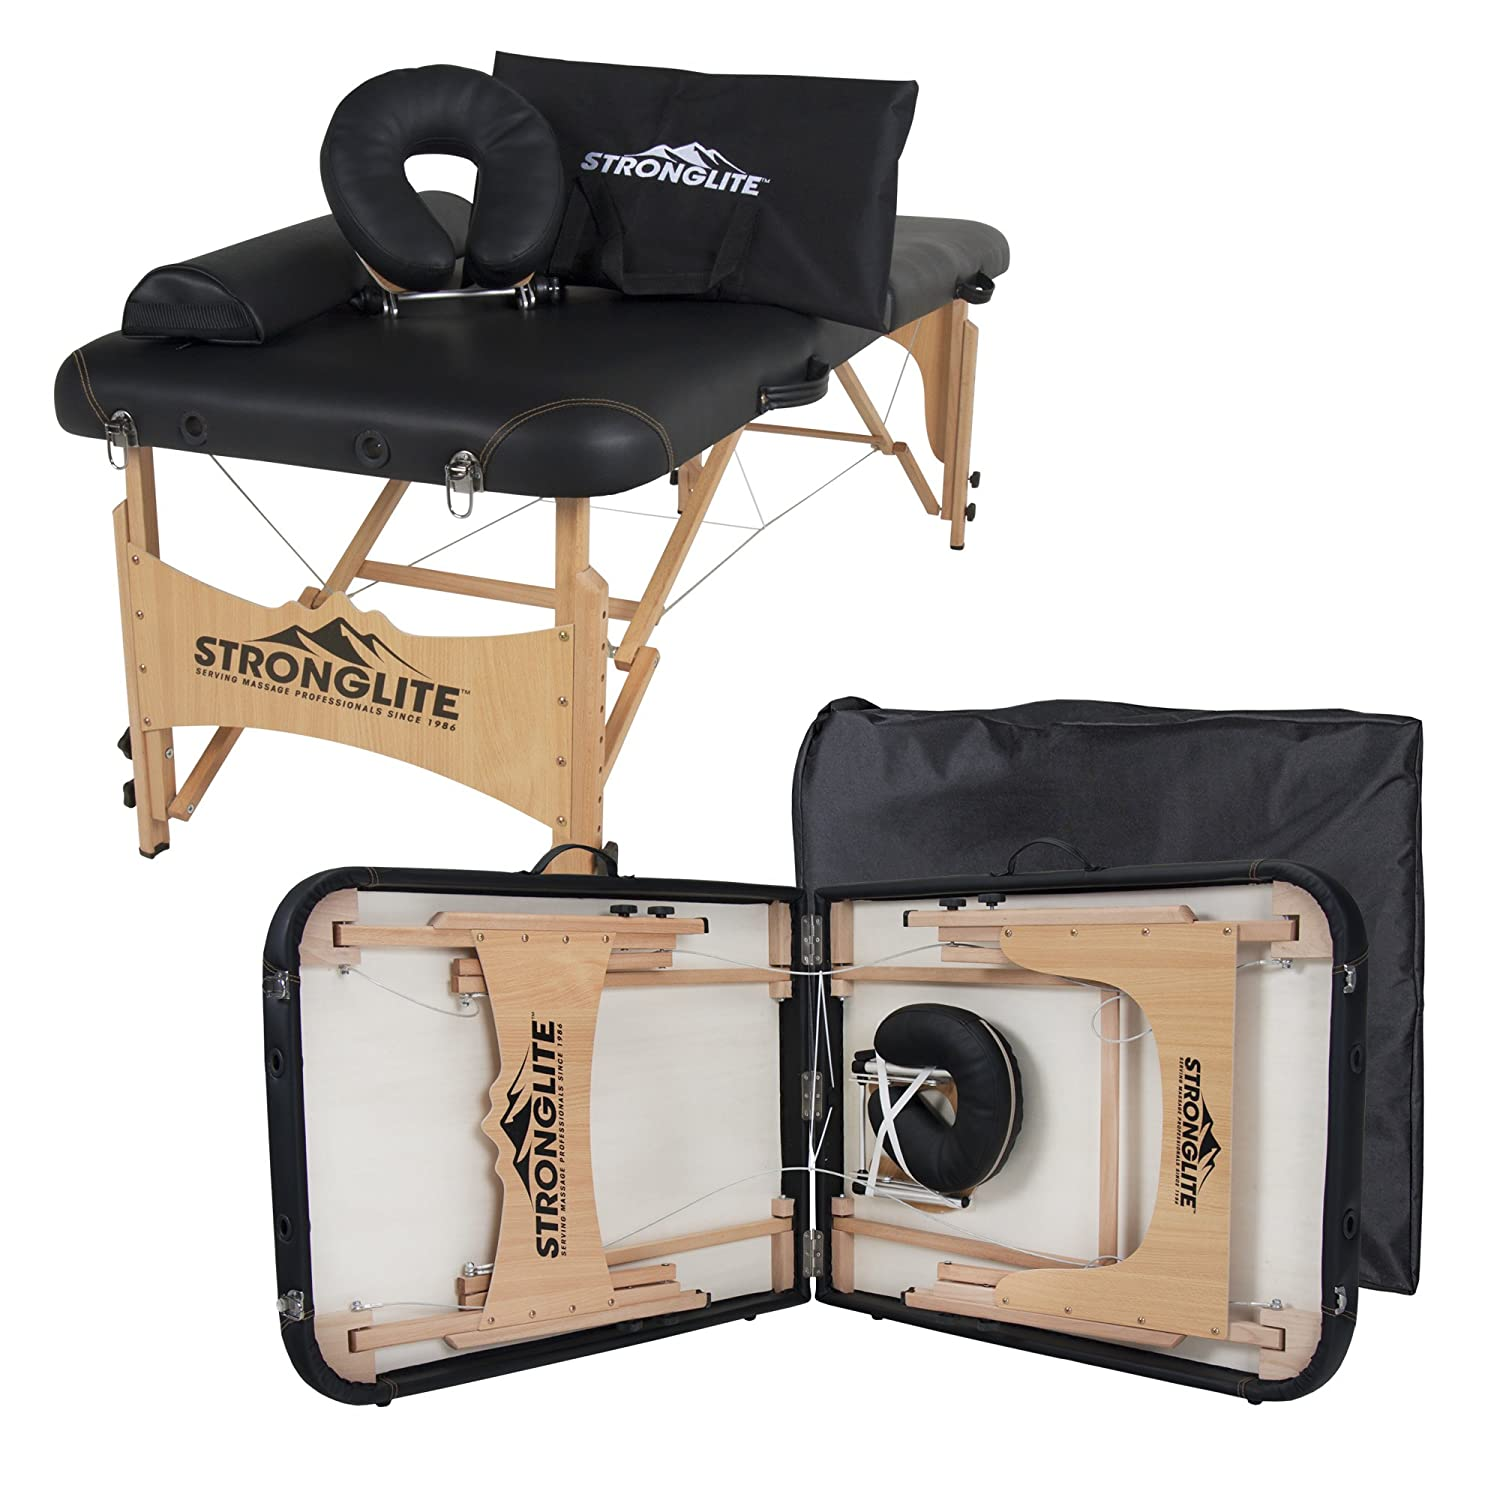 "STRONGLITE Portable Massage Table Olympia - Double Knobs, Package w/ Adjustable Face Cradle, Face Pillow, Half Round Bolster & Carry Case (28x73"")"